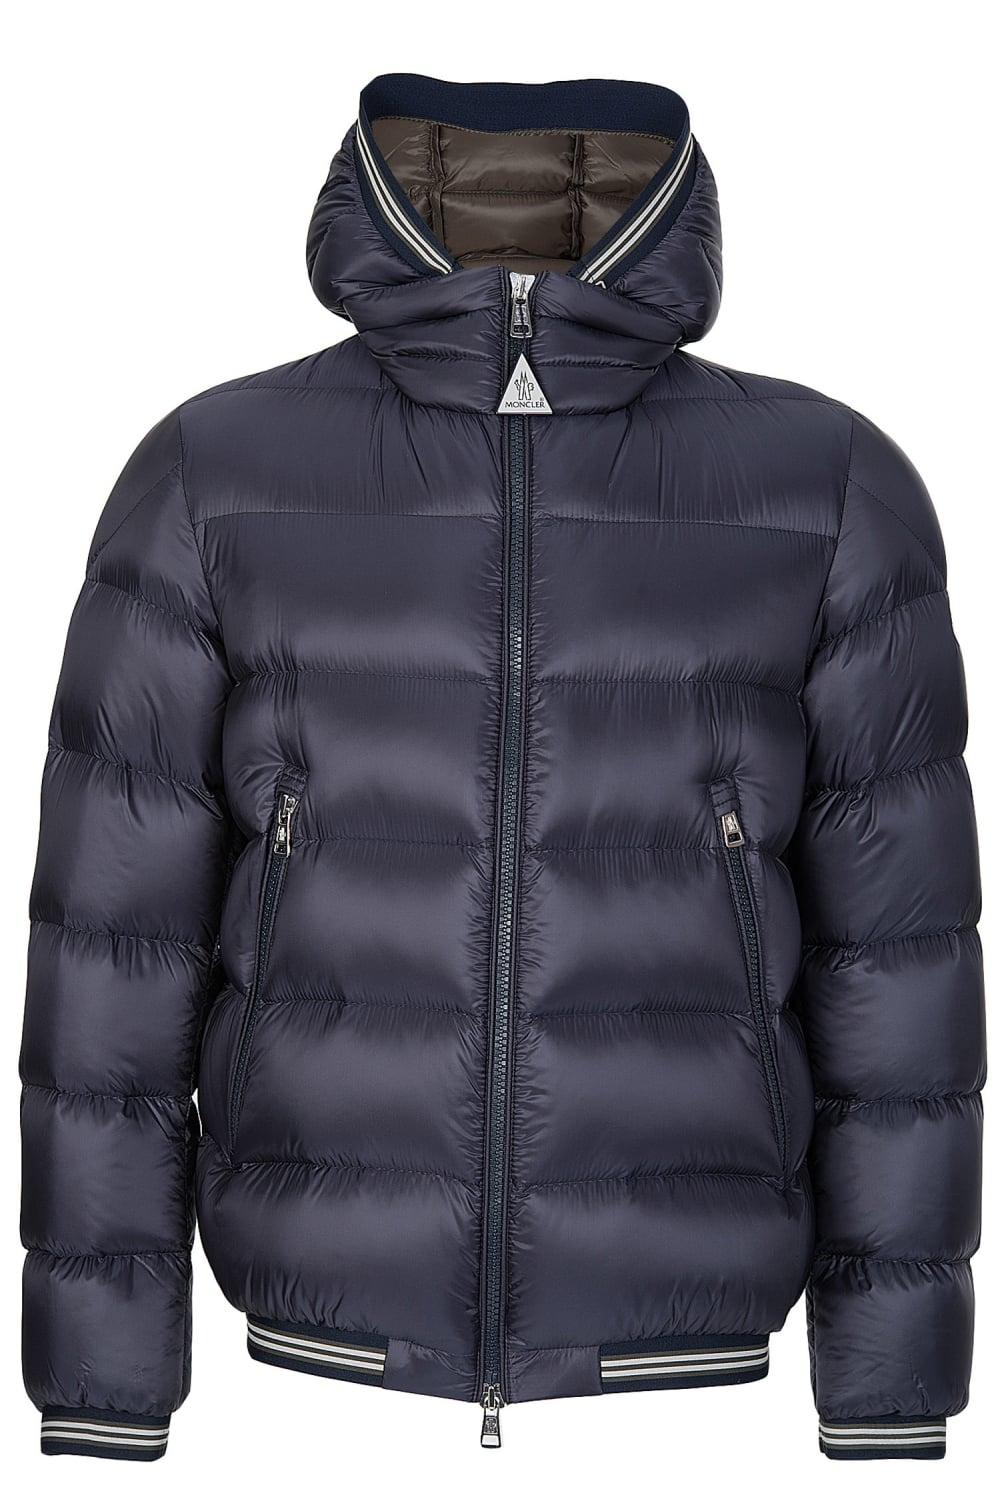 96263a3b1bf9 where to buy moncler jackets dublin uk 09f57 a6308